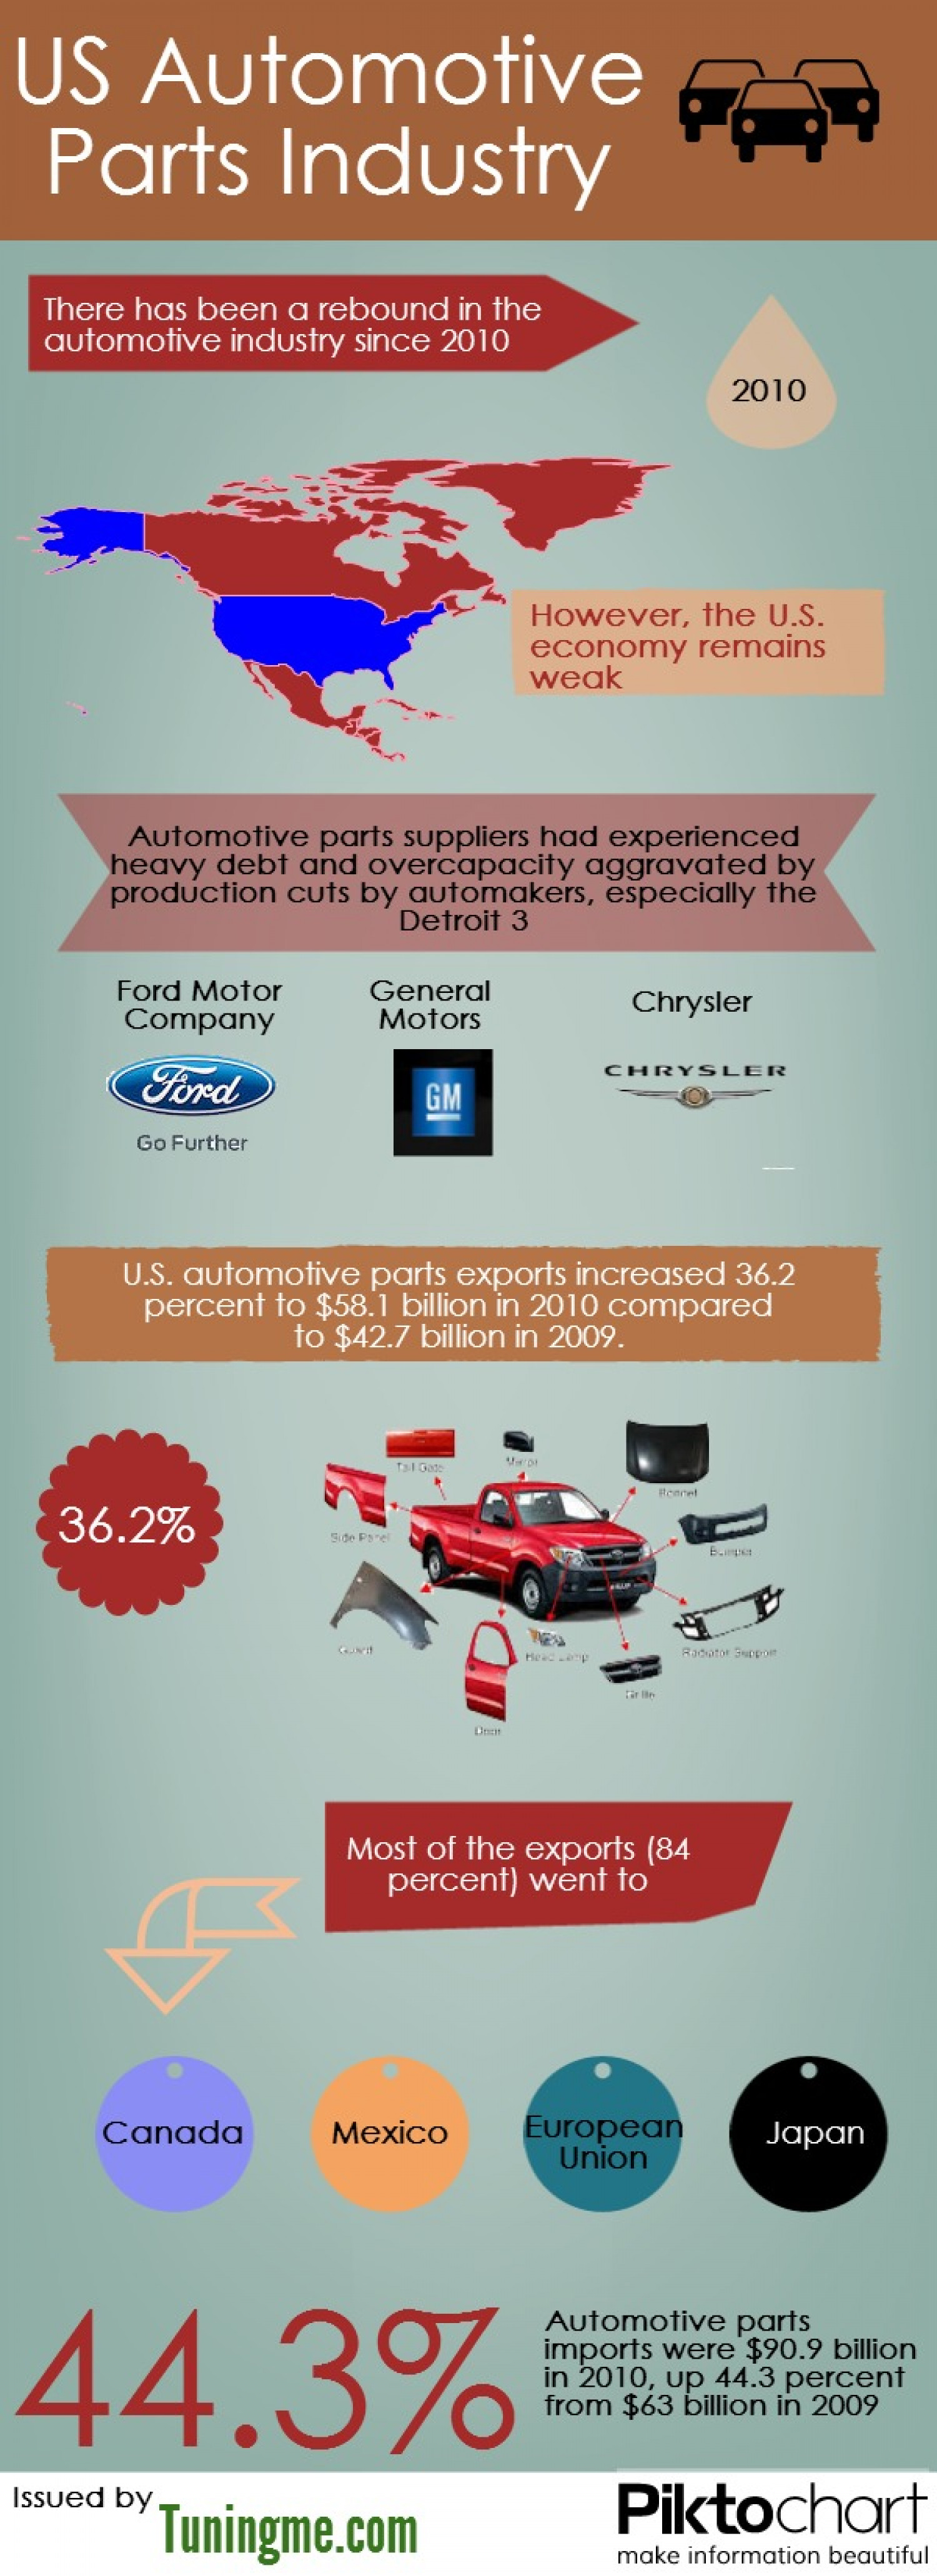 US Automotive Parts Industry Infographic